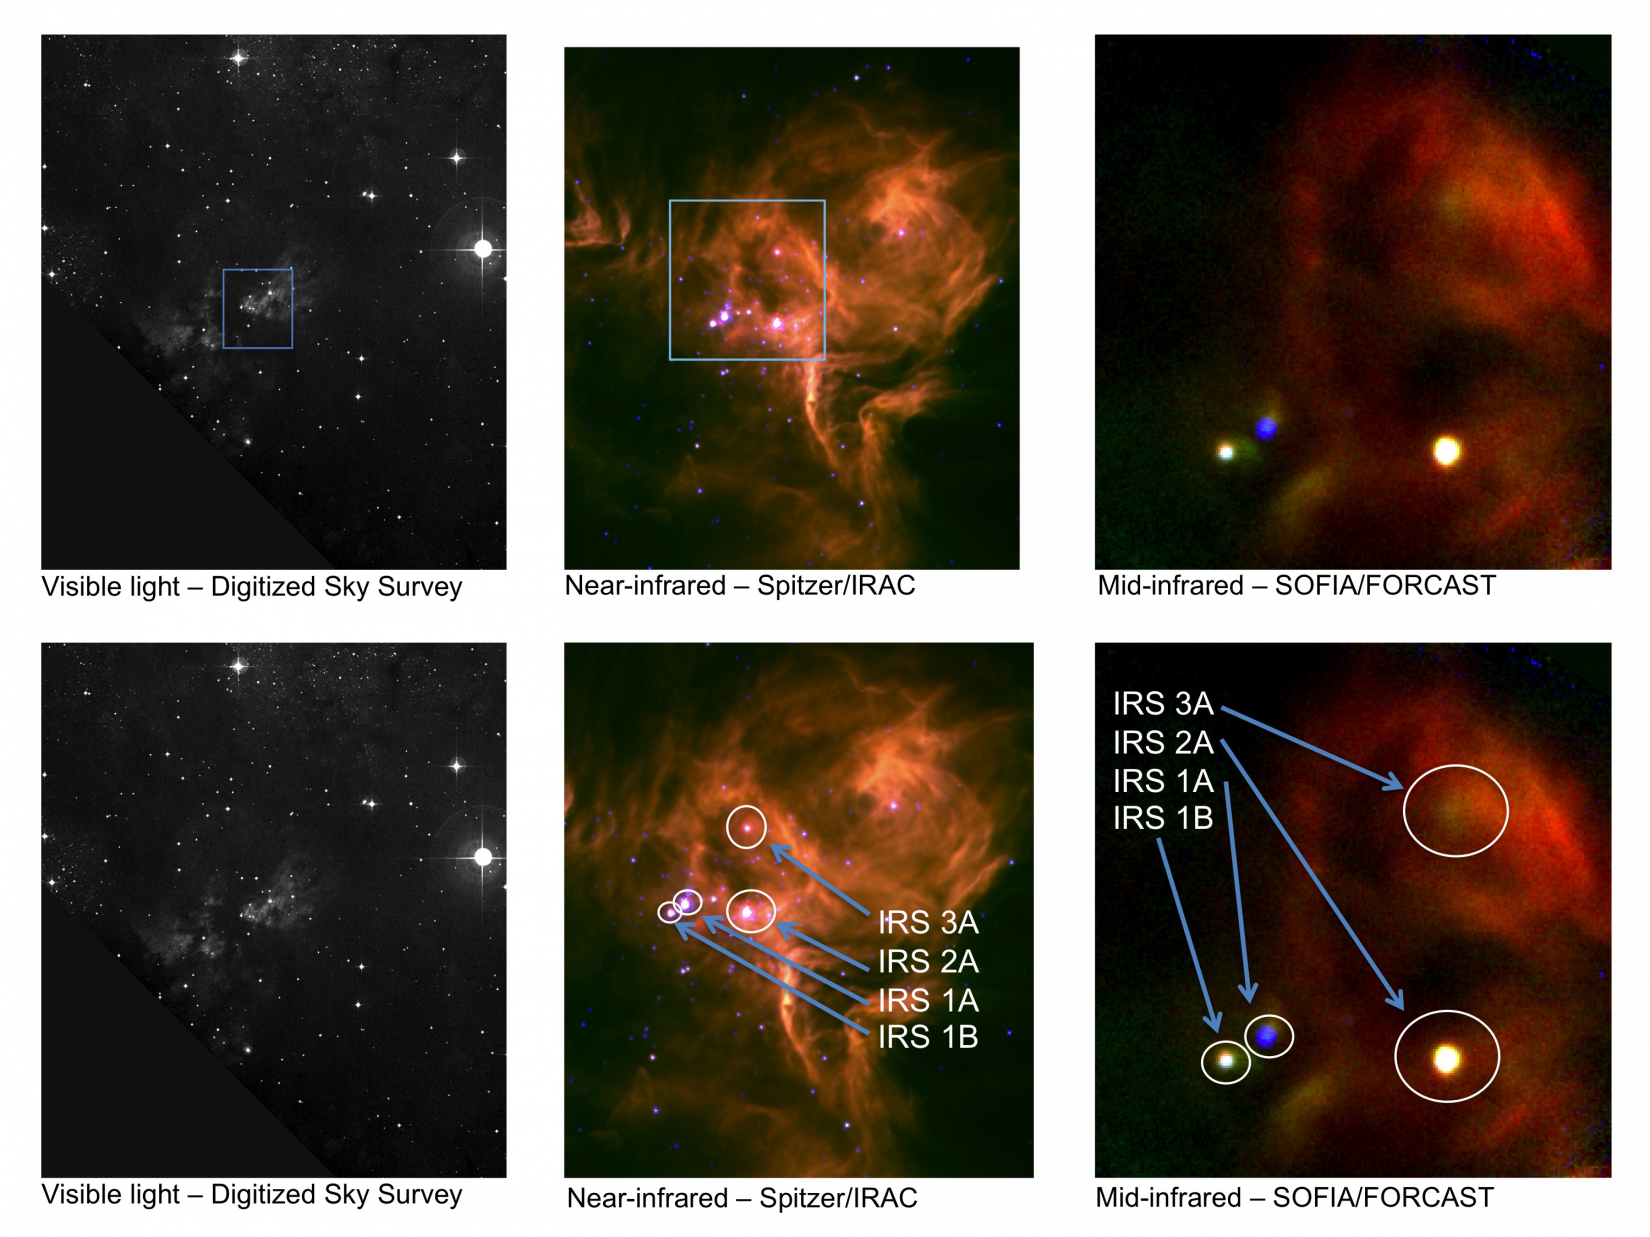 Comparison of images of the W40 star-forming region